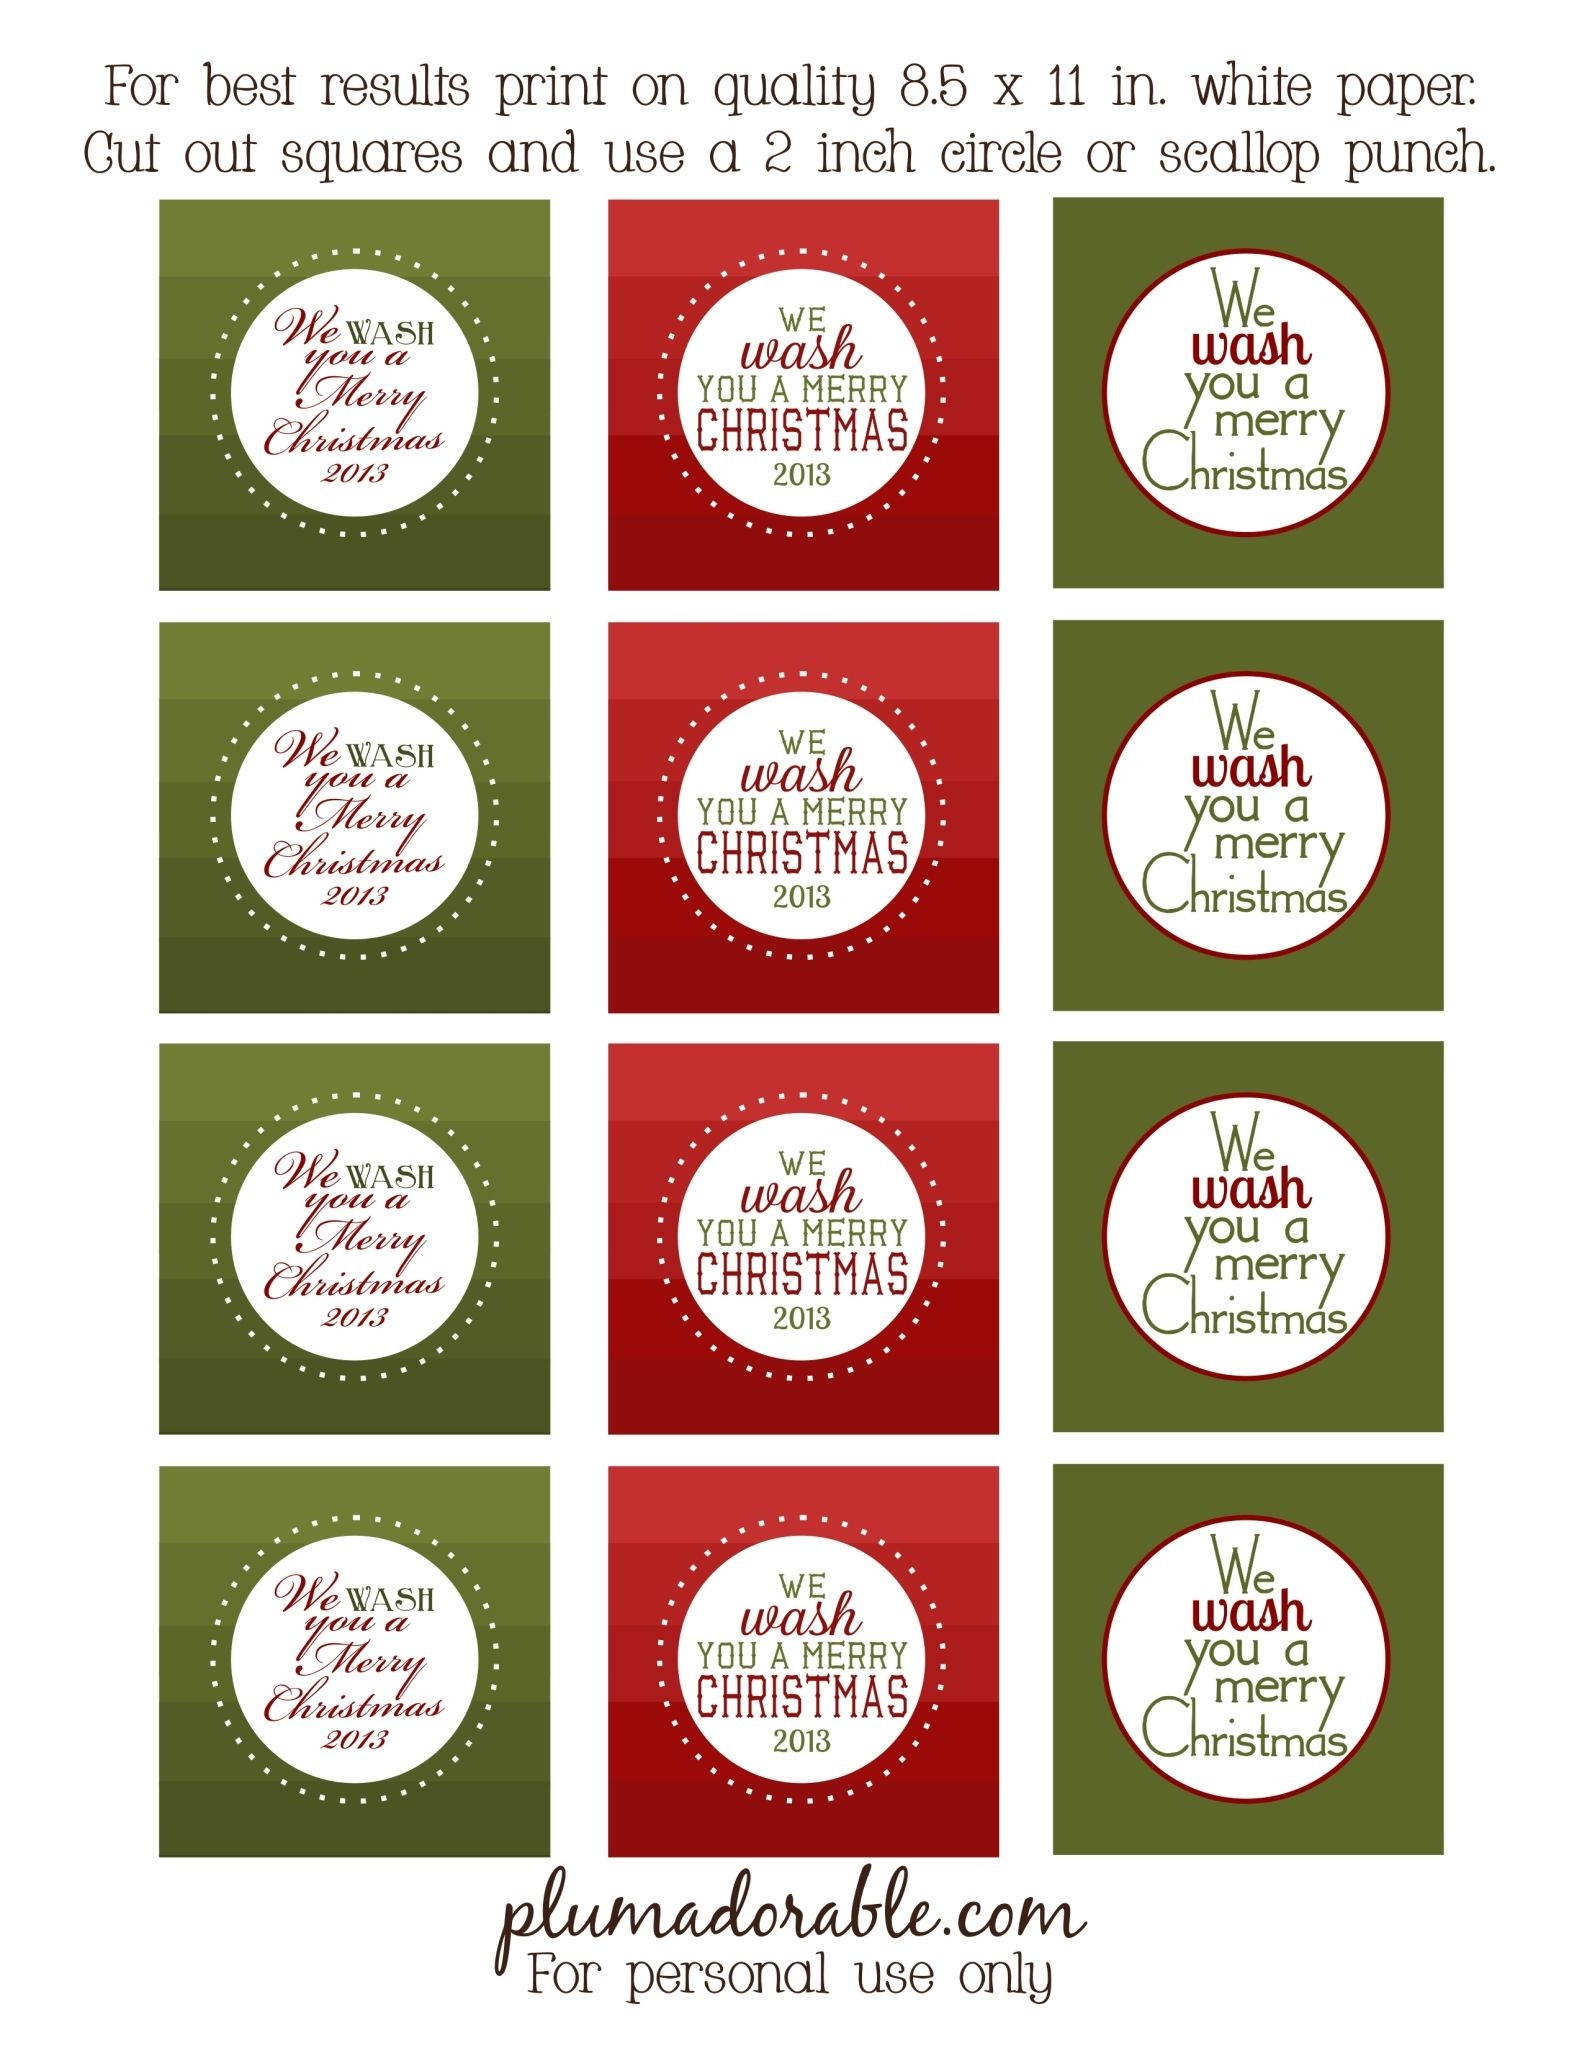 We Wash You A Merry Christmas - Free Printable Tags | Christmas - Free Printable Tags